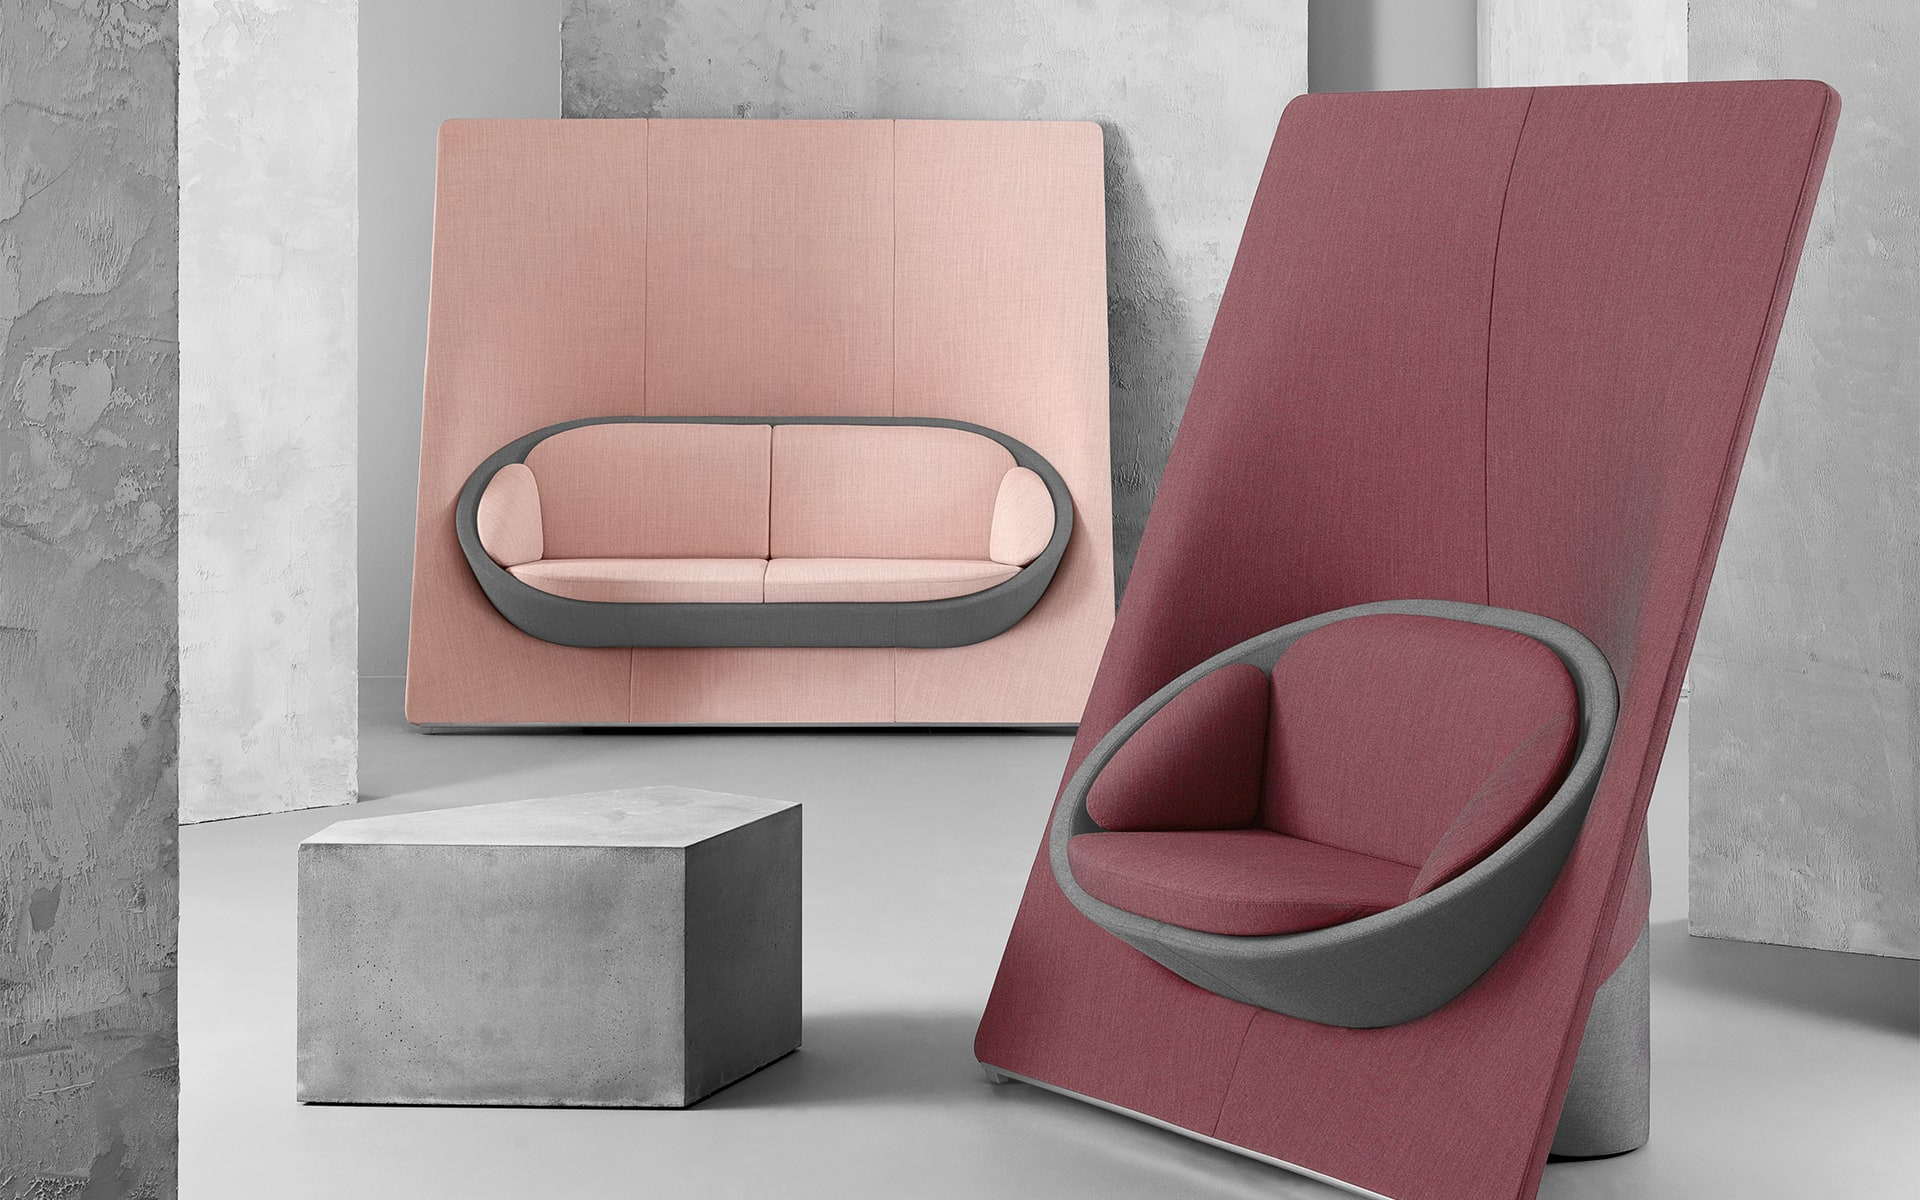 Profim Wyspa lounge seating system by ITO Design in dusky pink and berry beside concrete lounge table